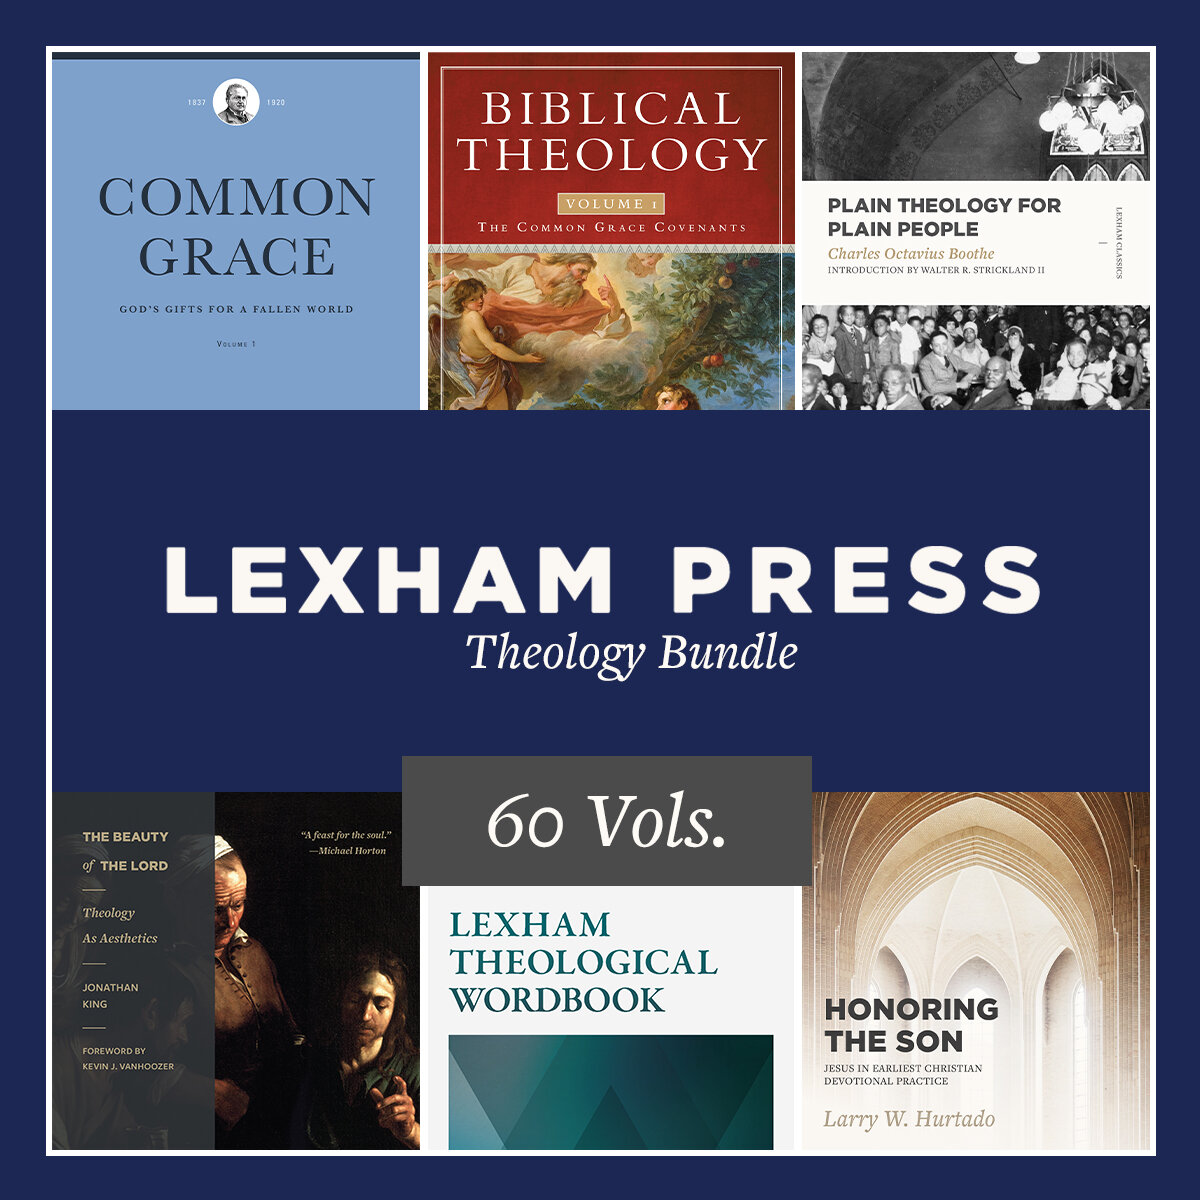 Lexham Press Theology Bundle (60 vols.)